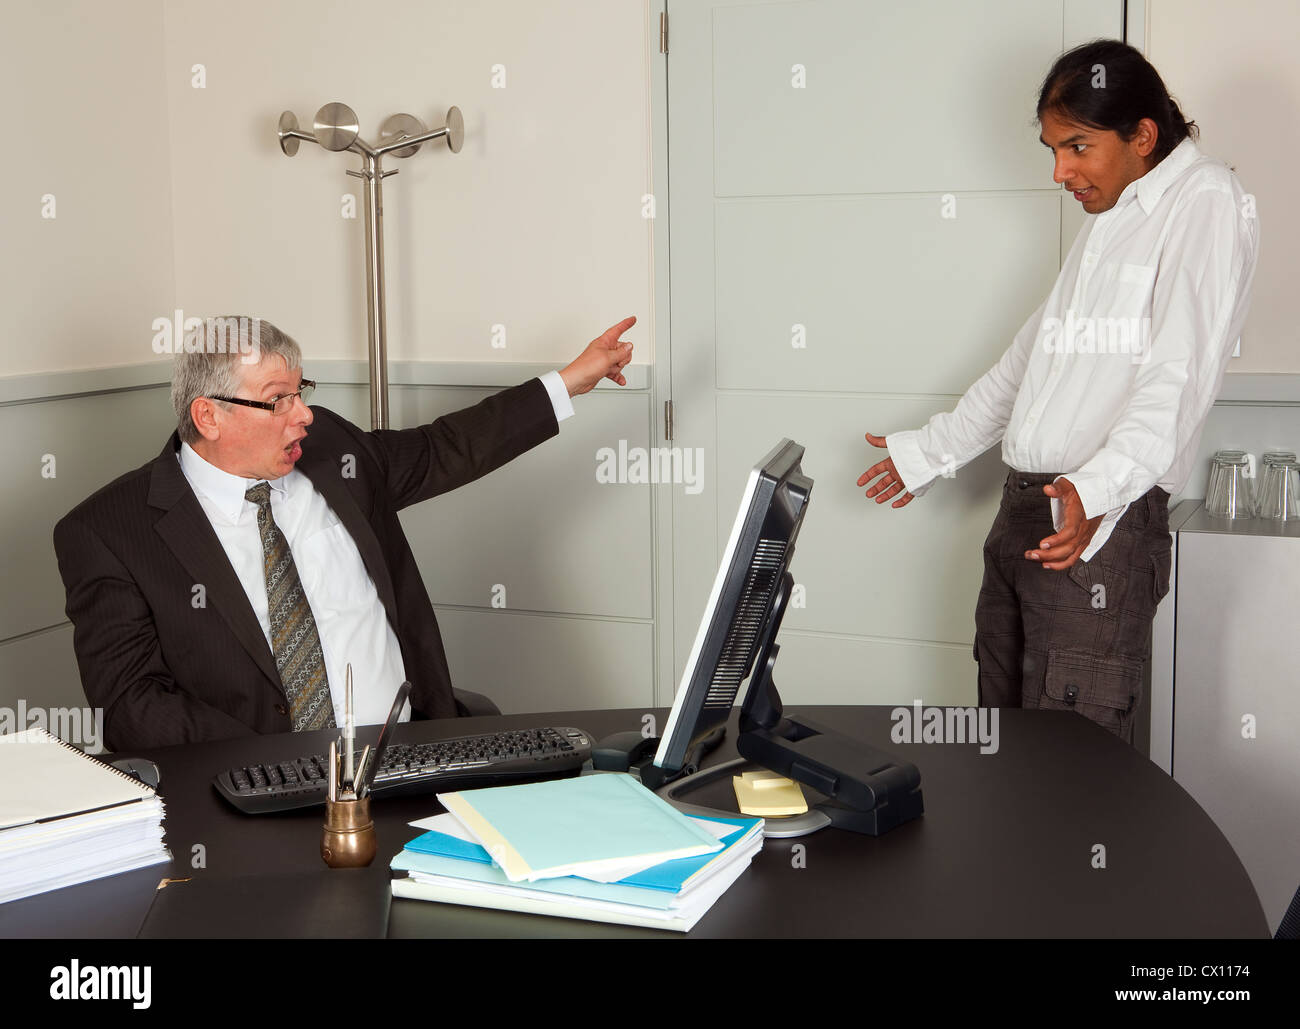 Very angry director firing one of his young employees - Stock Image